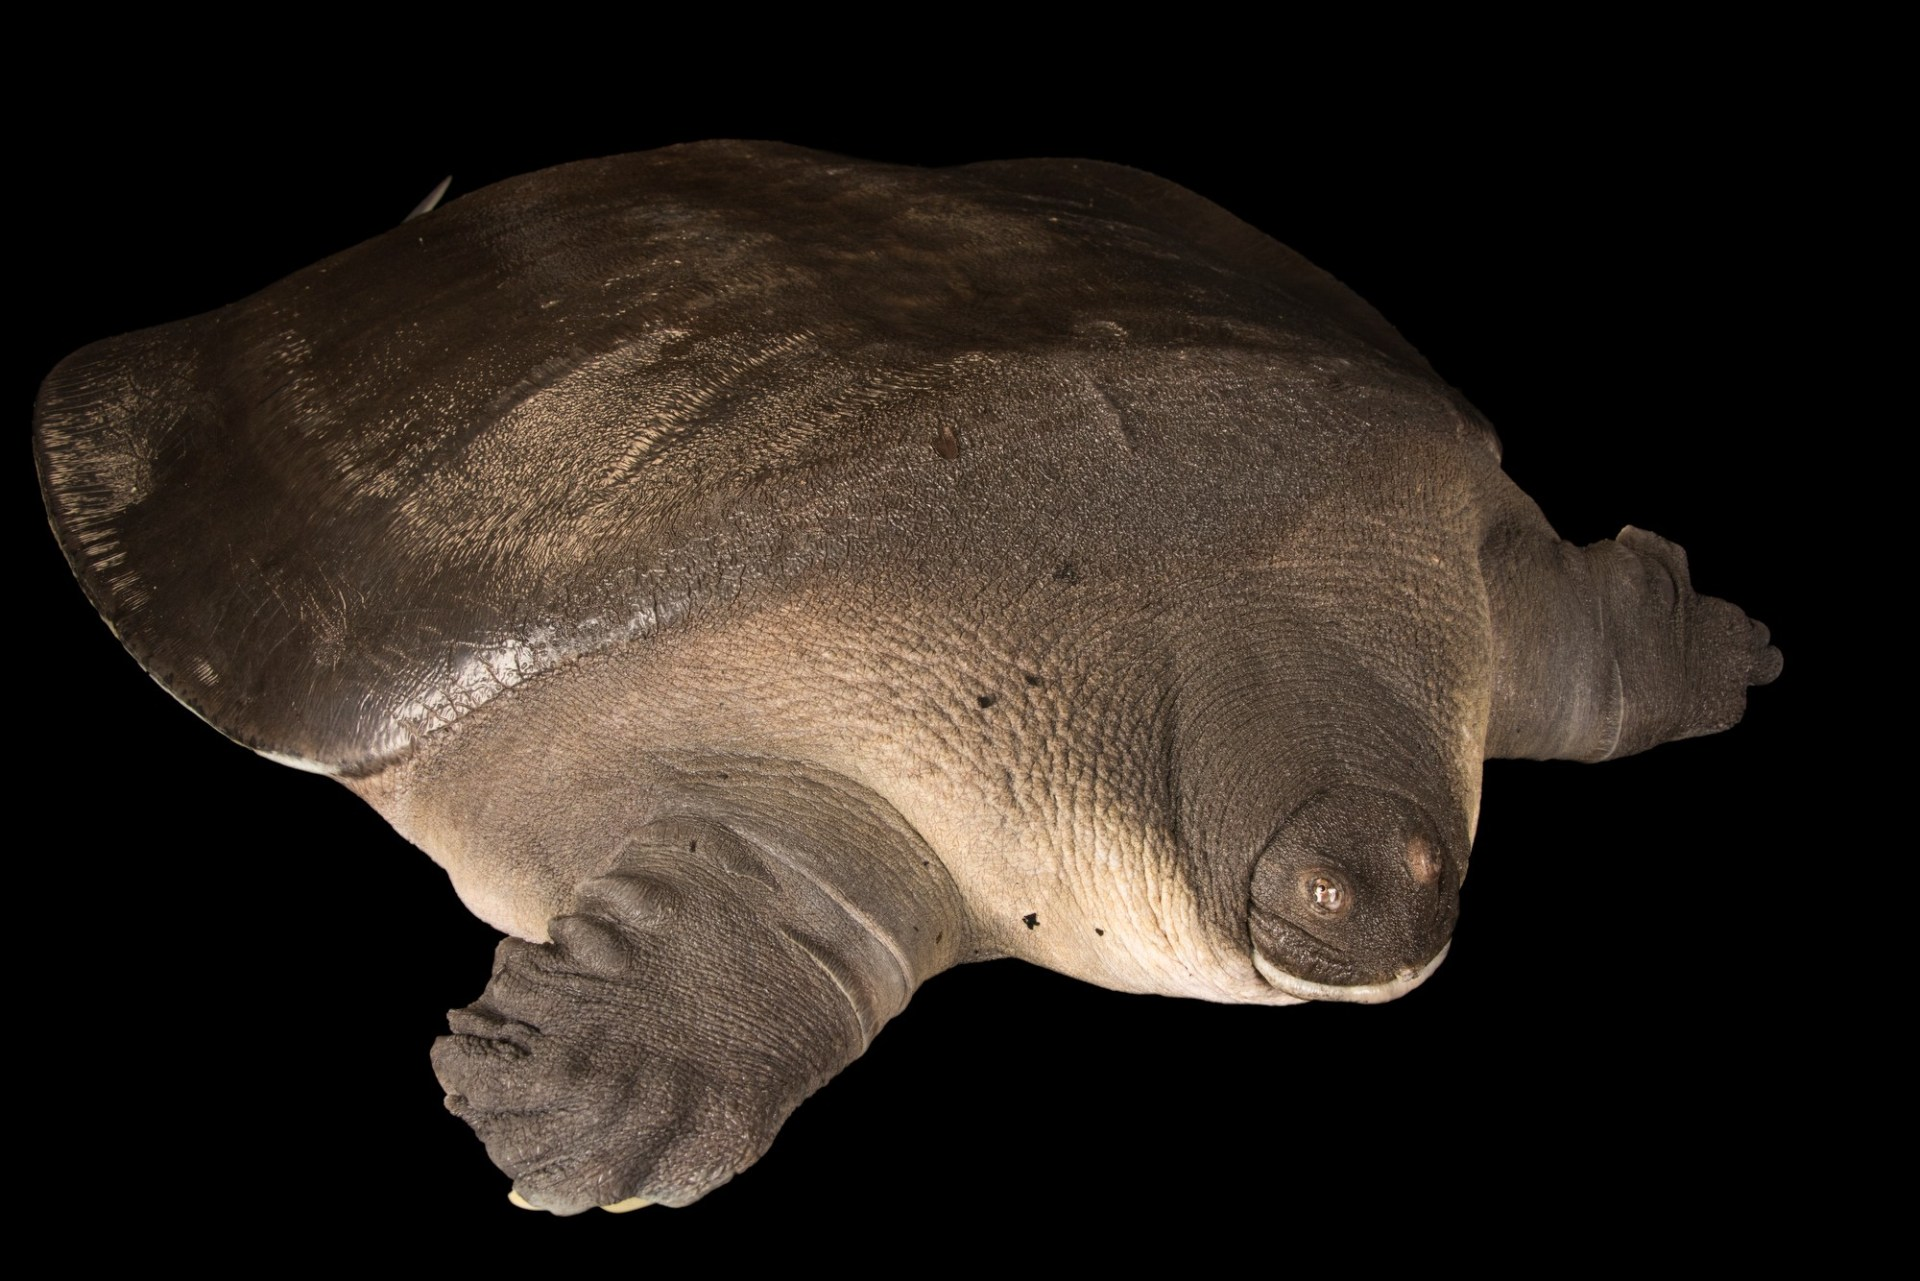 Photo: CantorÕs giant softshell turtle (Pelochelys cantorii) at Zoo Negara.